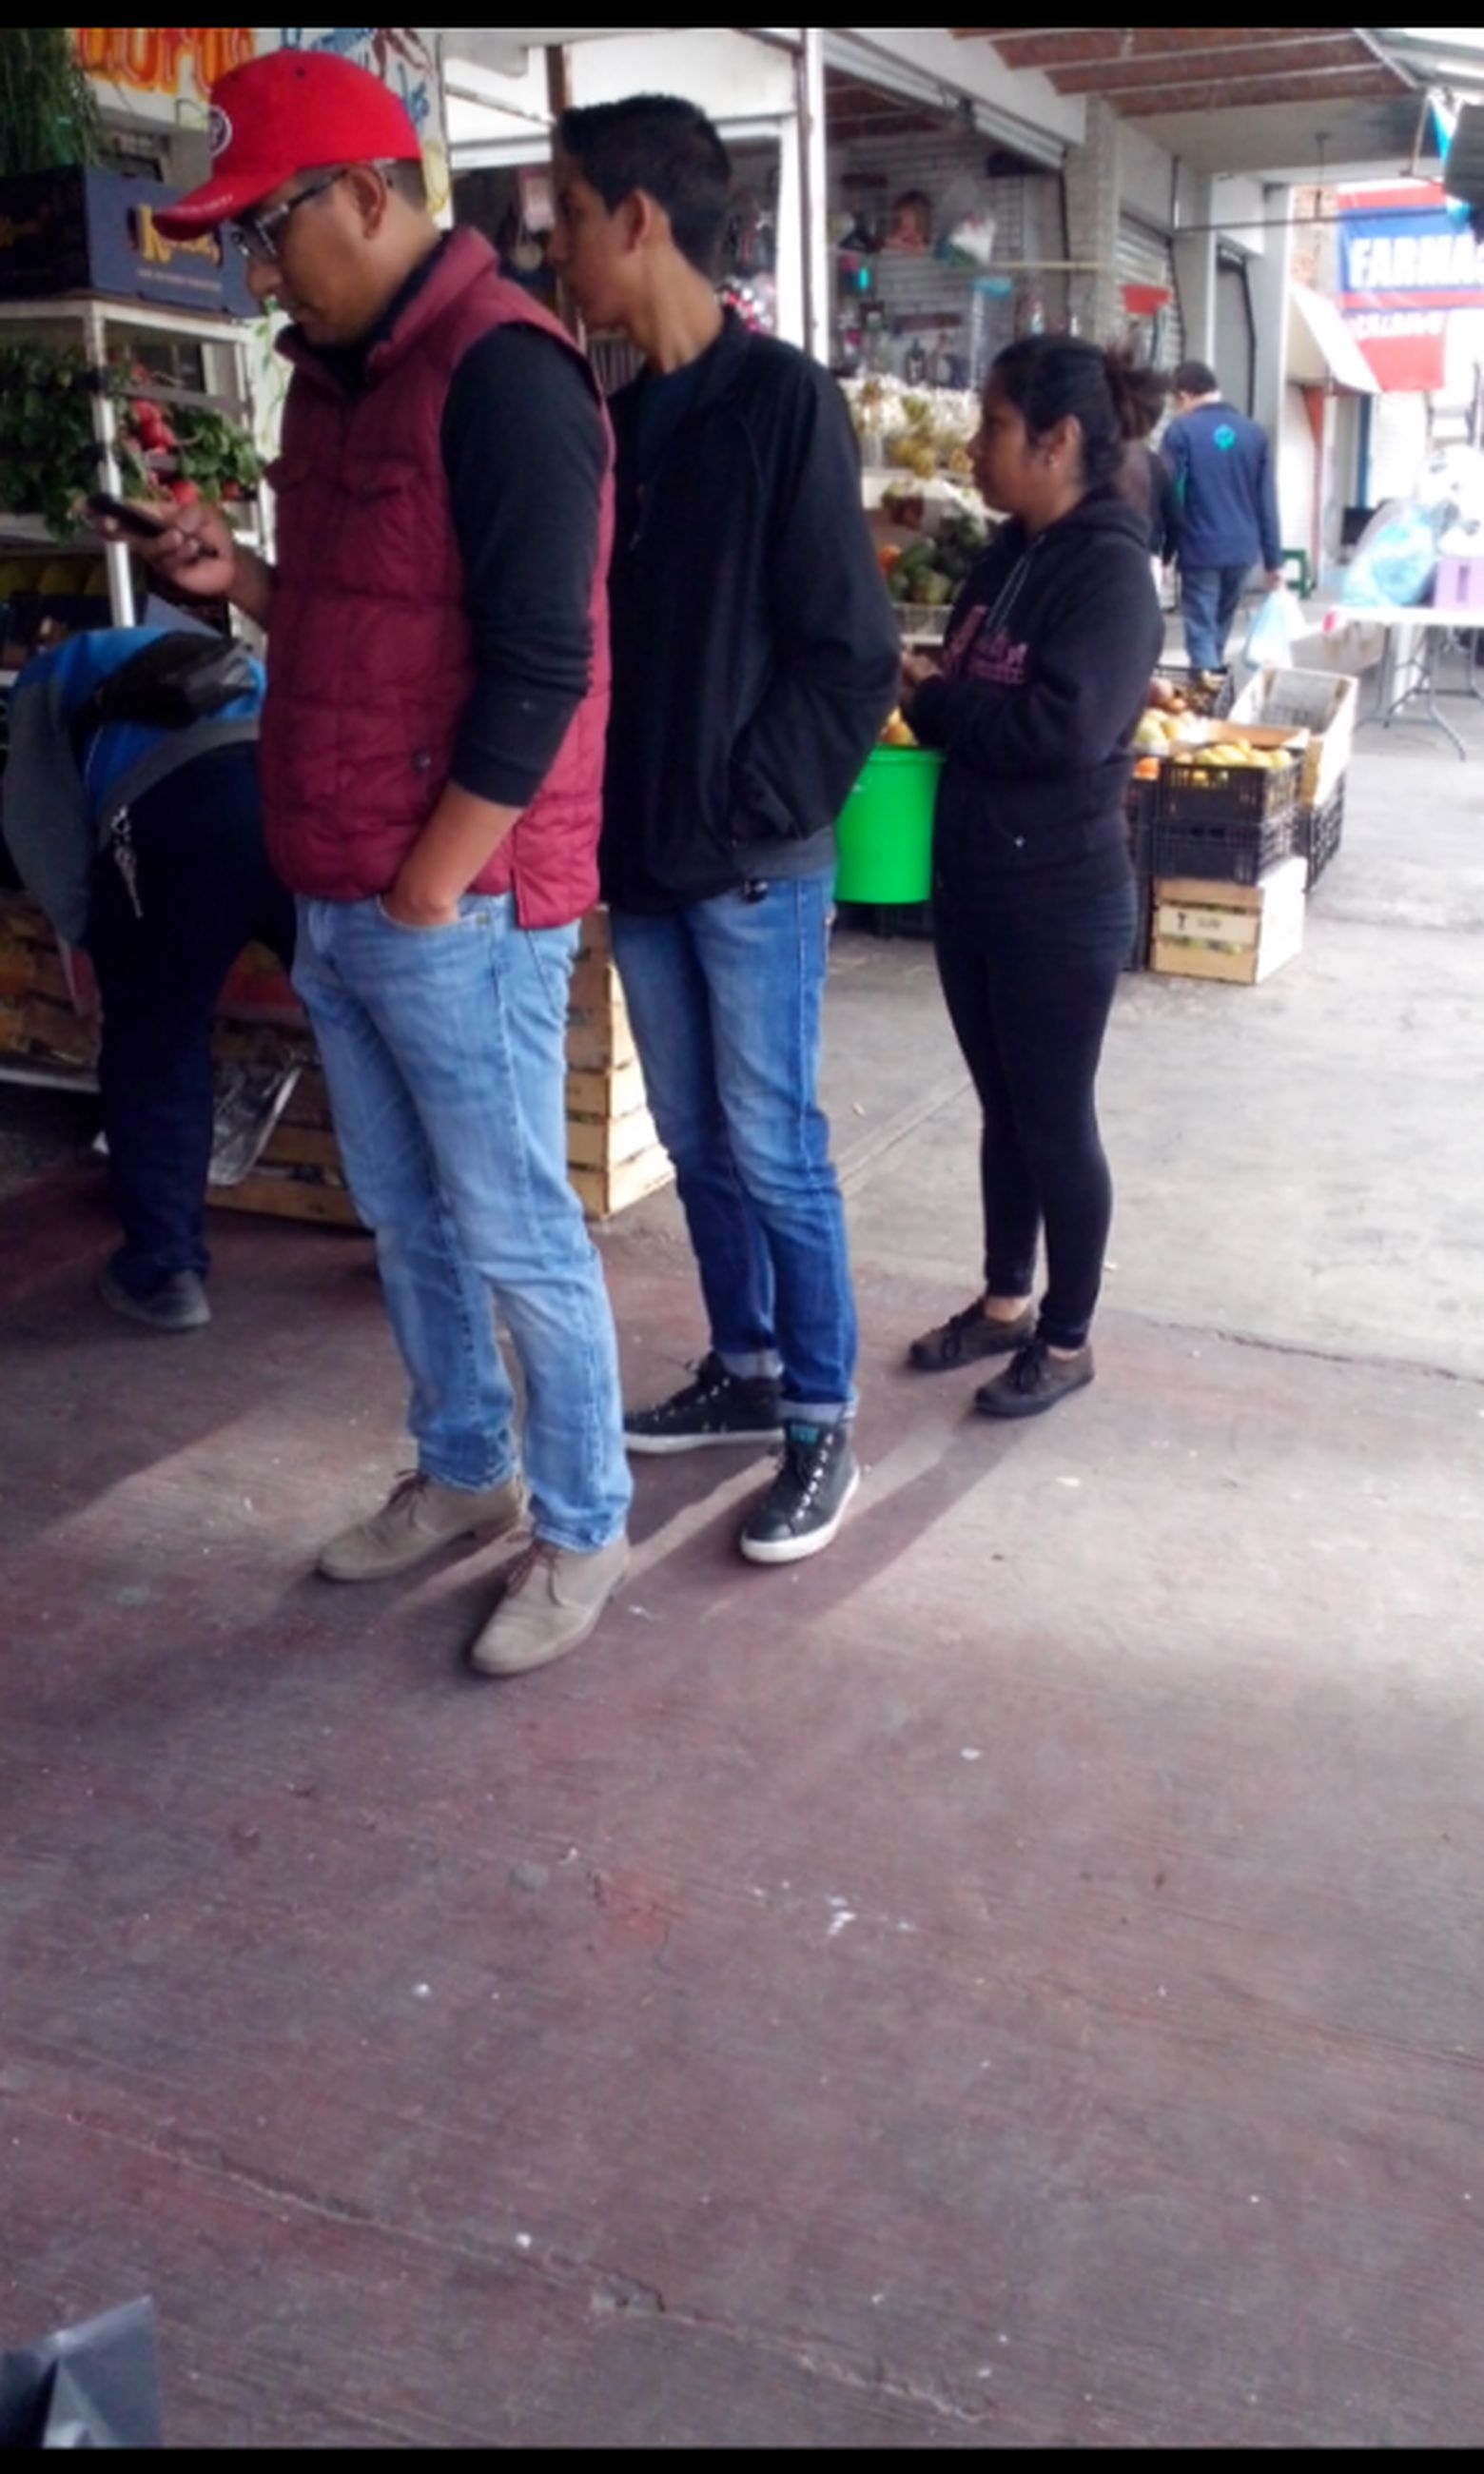 full length, lifestyles, casual clothing, leisure activity, childhood, men, togetherness, boys, walking, girls, person, street, elementary age, standing, city life, fun, enjoyment